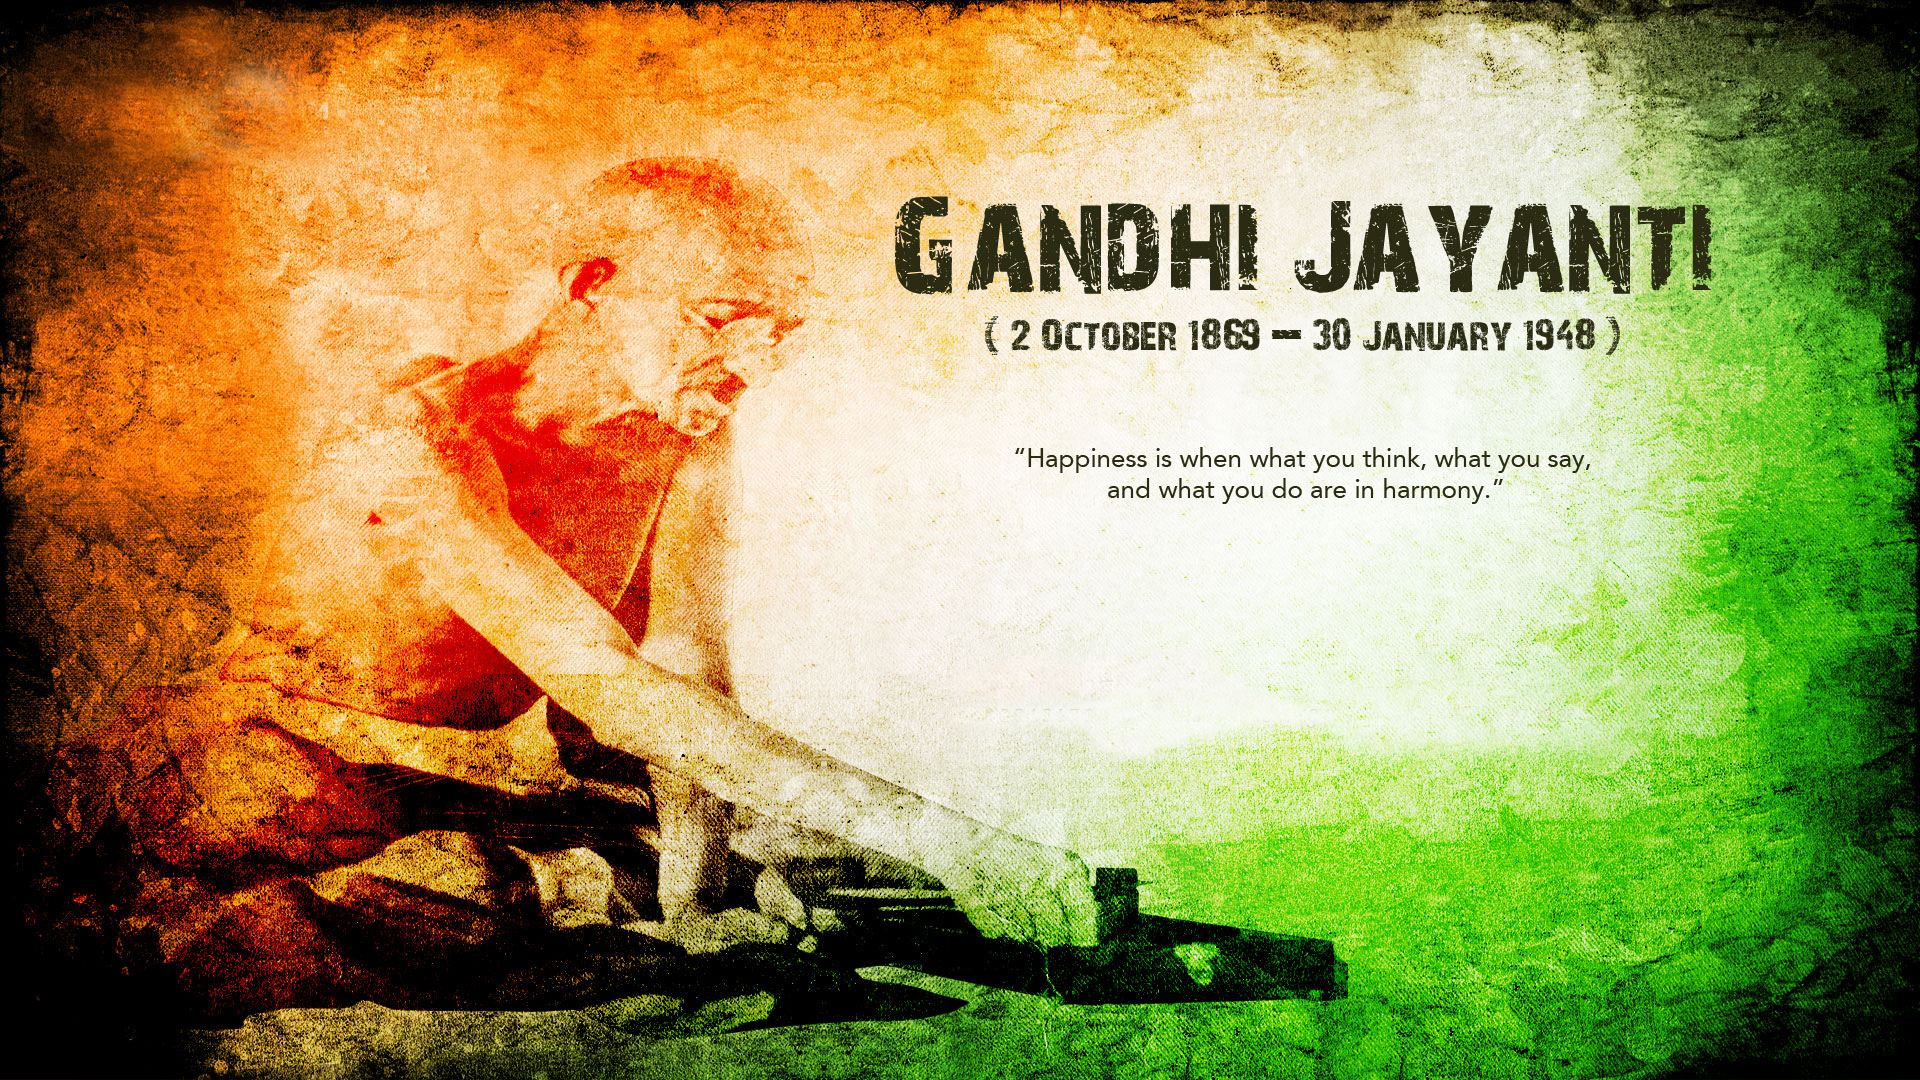 essay on gandhiji father of our nation  essay on gandhiji father of our nation